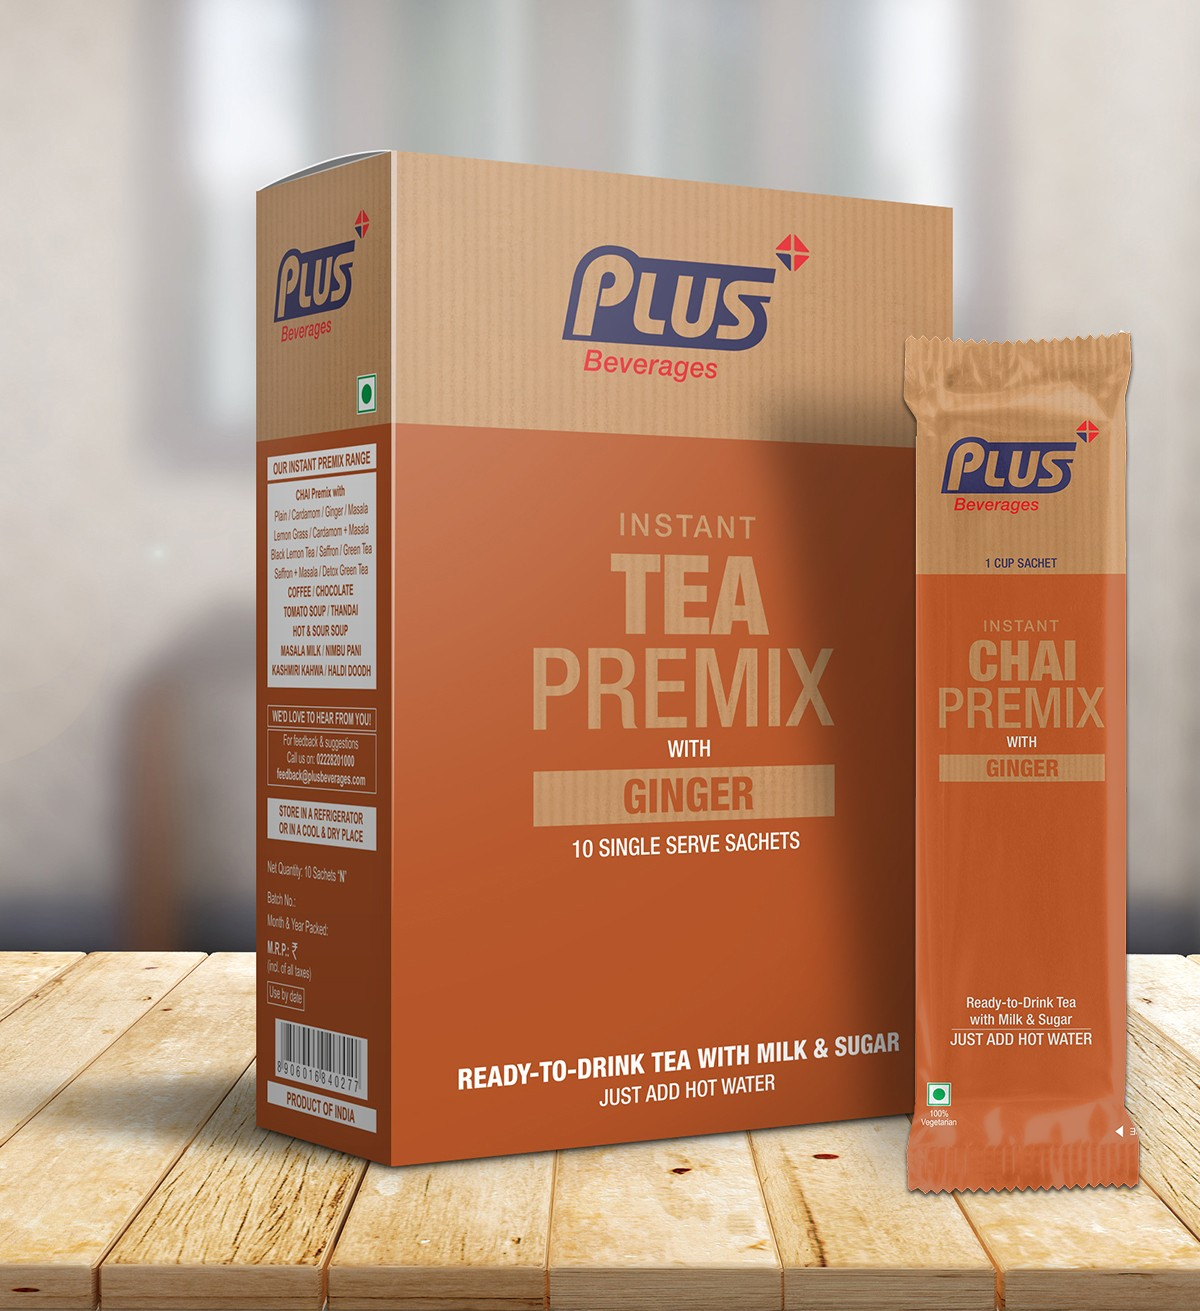 Get Instant Tea With Ginger Premix at best price - Free Shipping | Plus Beverages